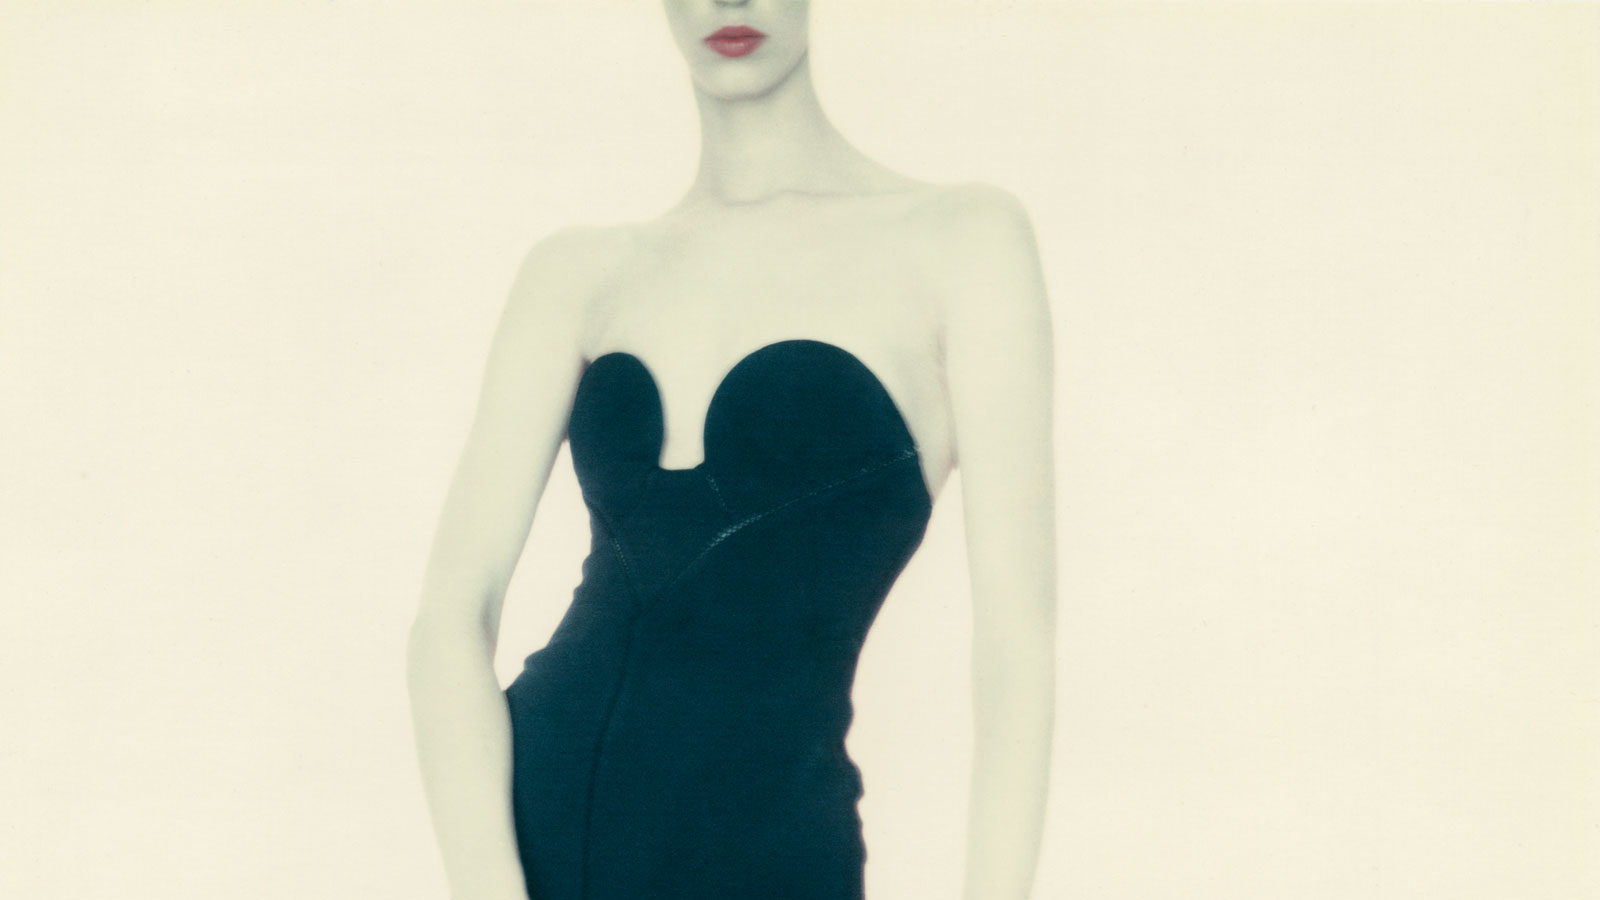 Detail Of: Paolo Roversi, Meg, Alaïa Dress, 1987 © Paolo Roversi